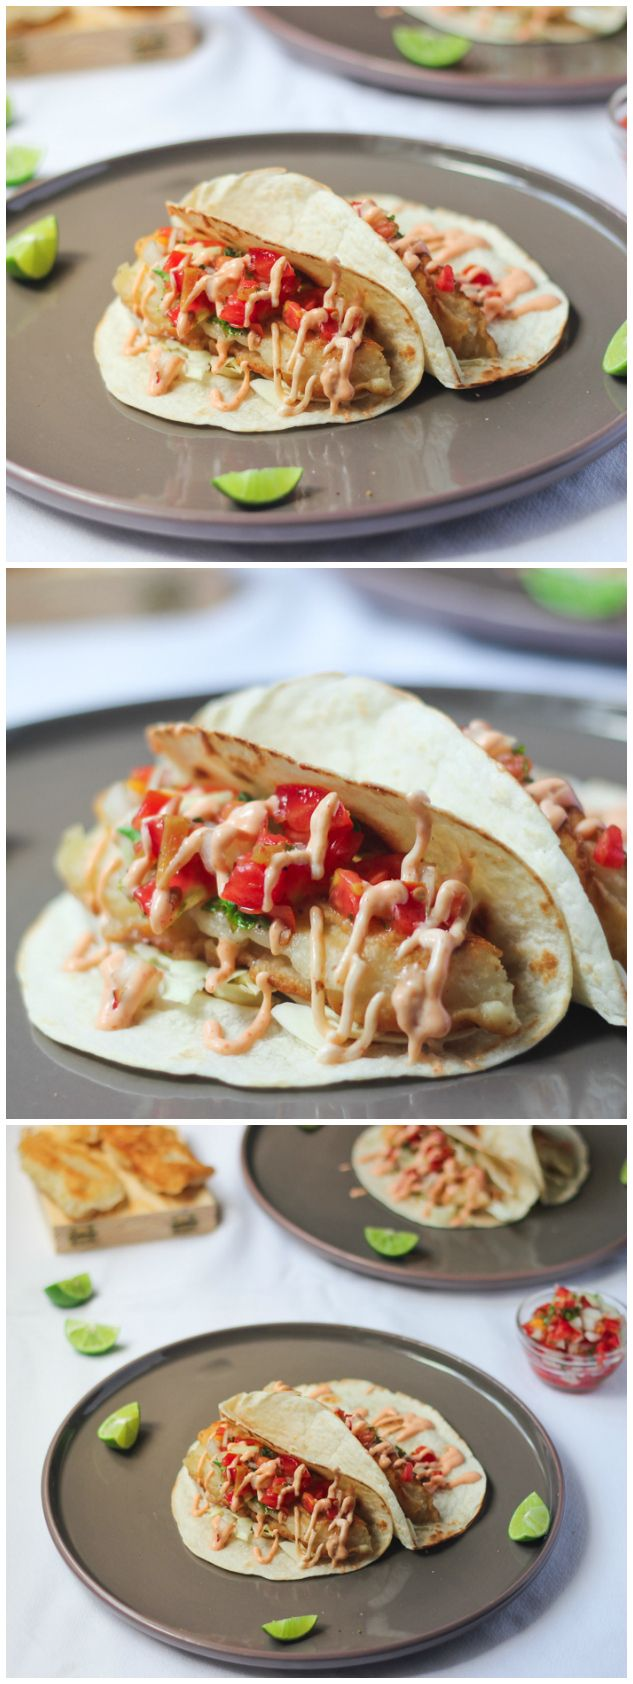 Beer-Battered Fish Tacos with Sriracha Mayo is a delicious, easy and insanely tasty meal for your typical fish meal this Easter season! The pico de gallo is the best part!